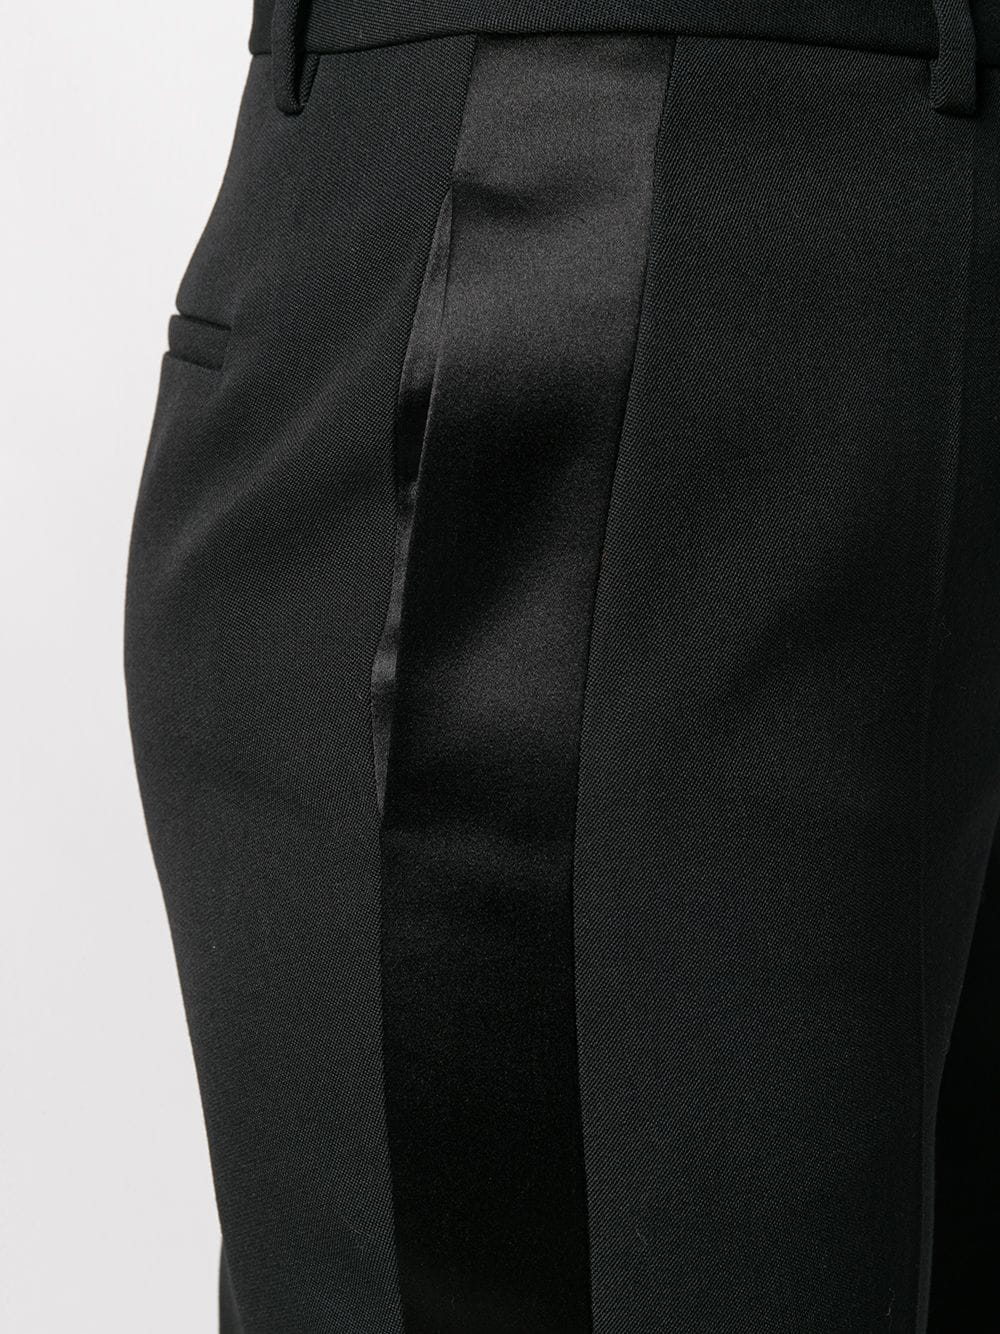 black wool tuxedo black trousers with side satin black band GIVENCHY |  | BW50E111BN001